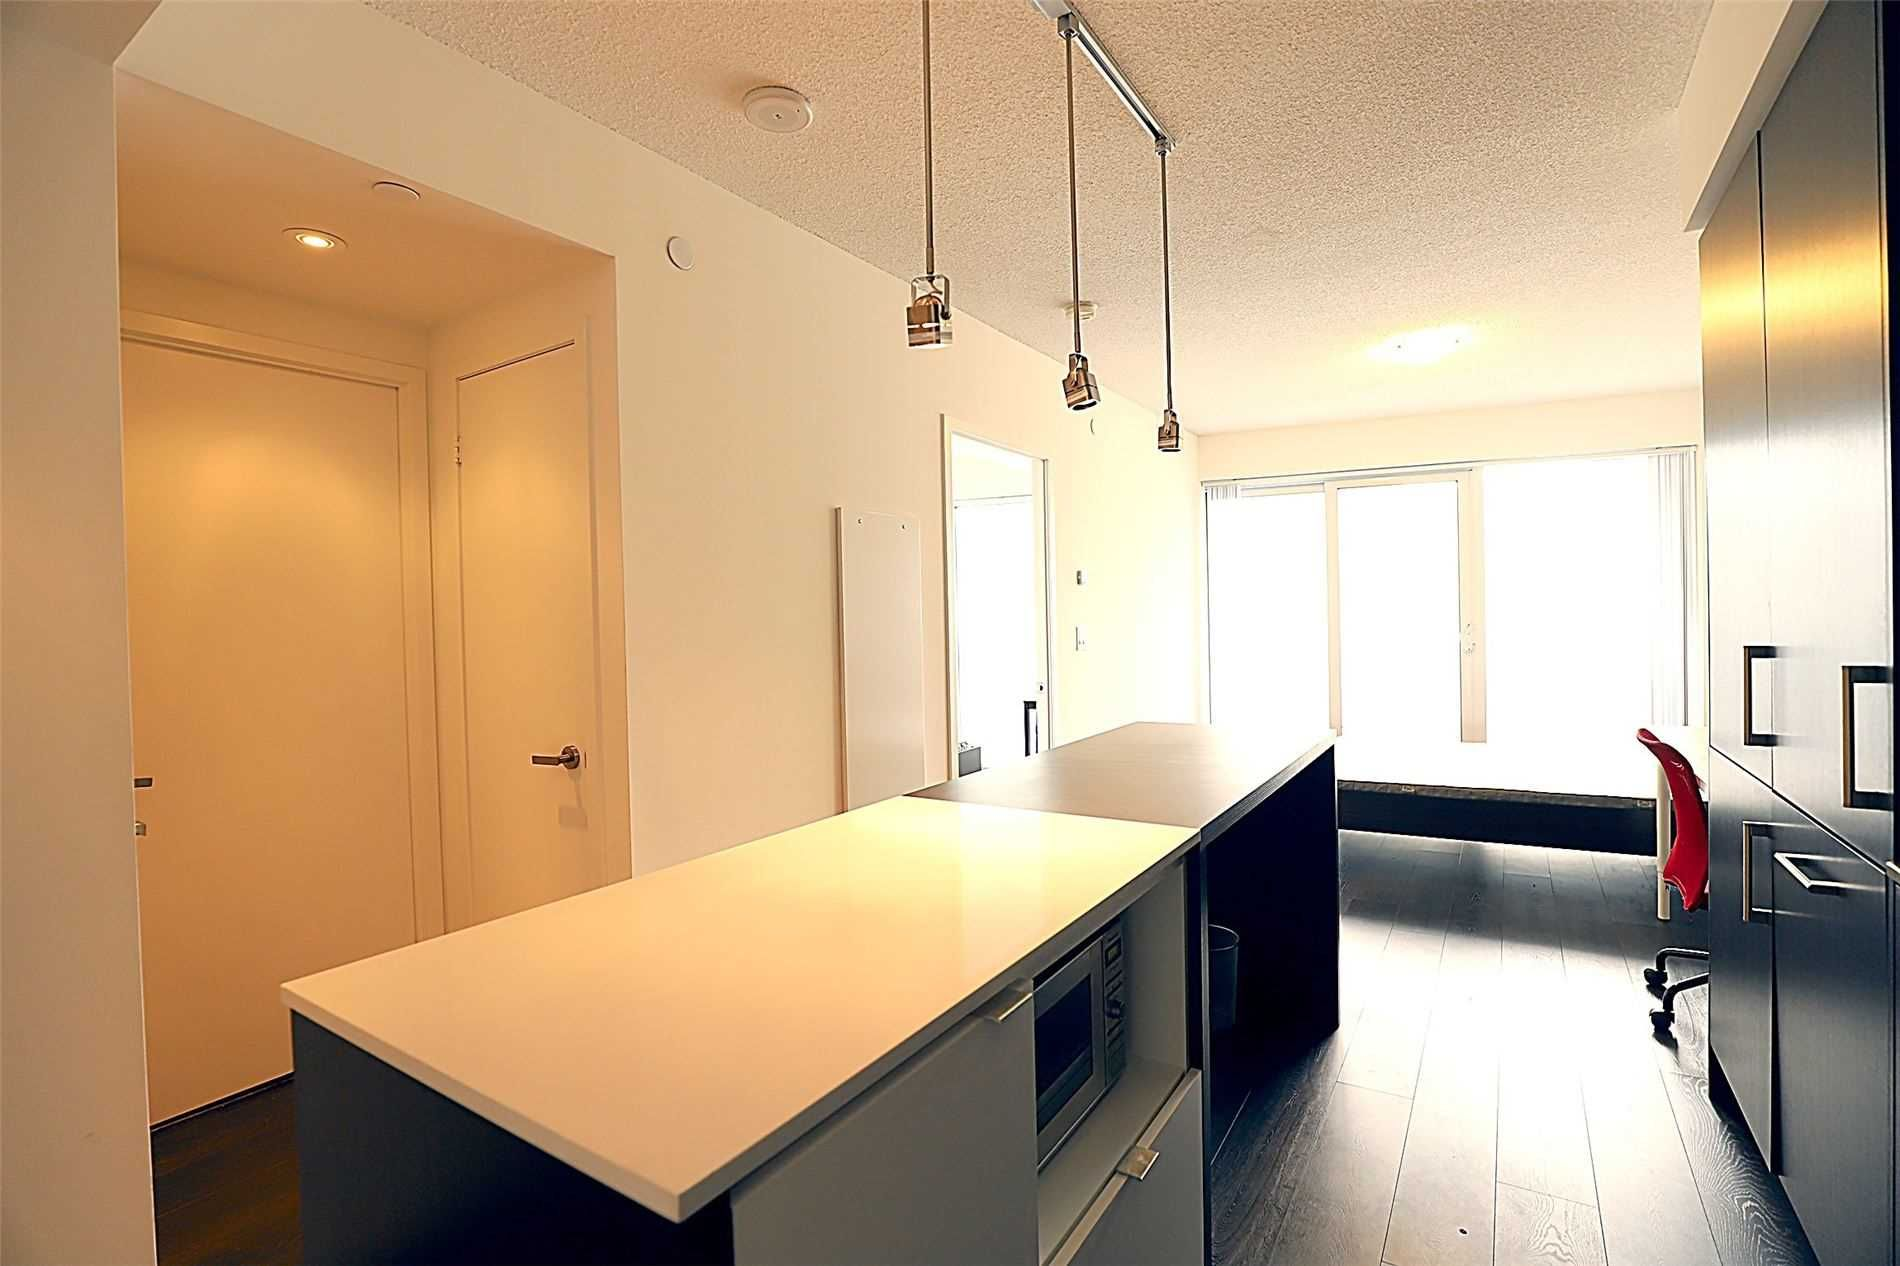 88 Harbour St, unit 2003 for rent in Toronto - image #1